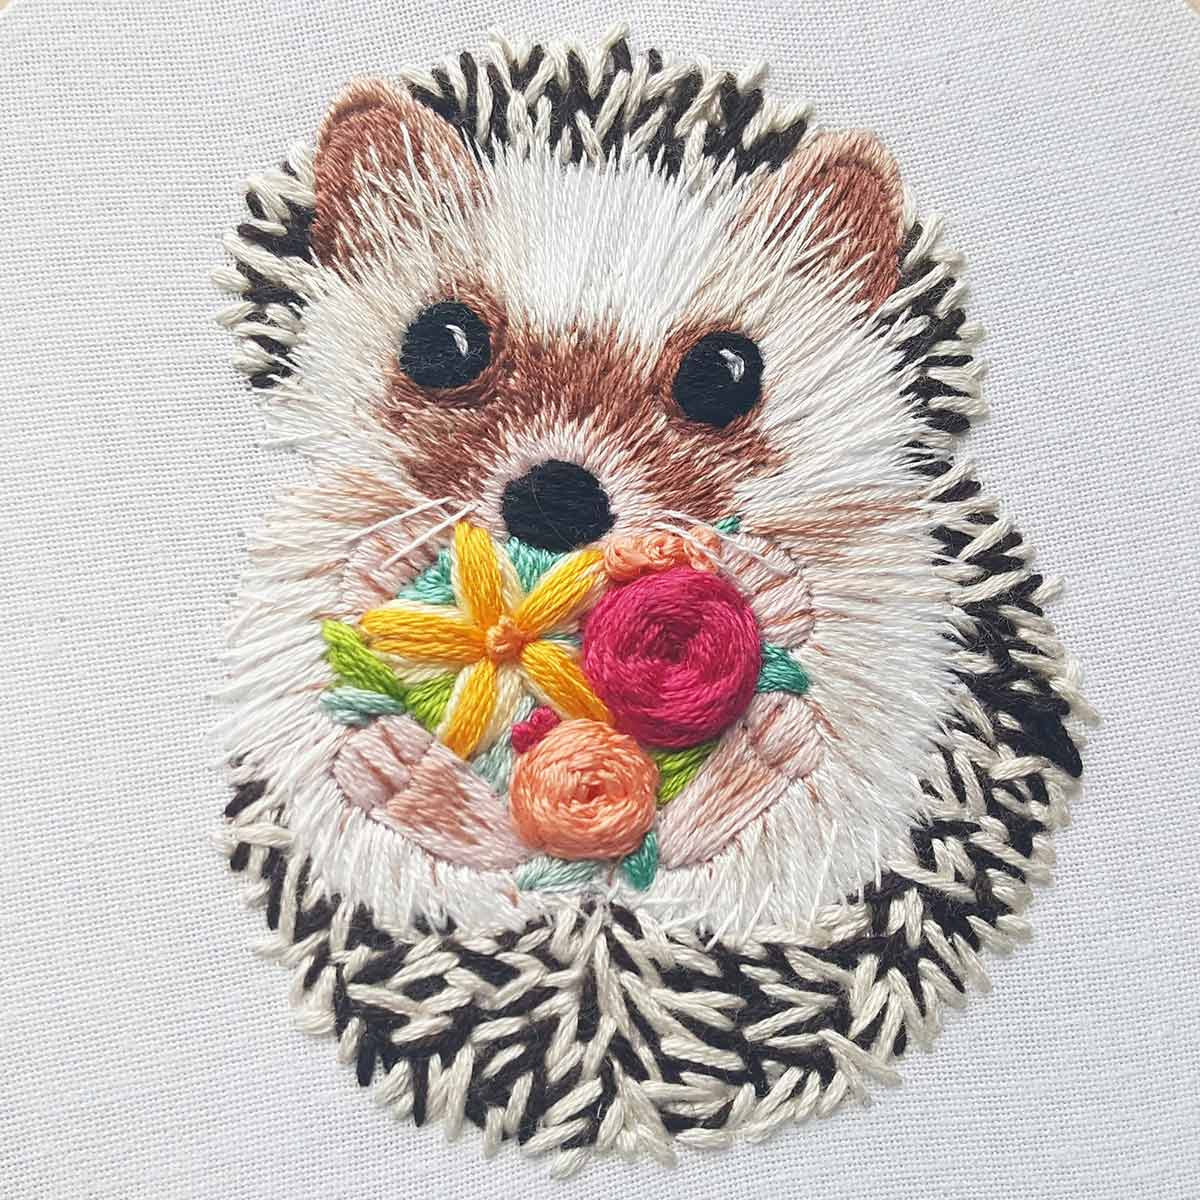 Embroidered hedgehog by Jessica Long of Namaste Hand Embroidery